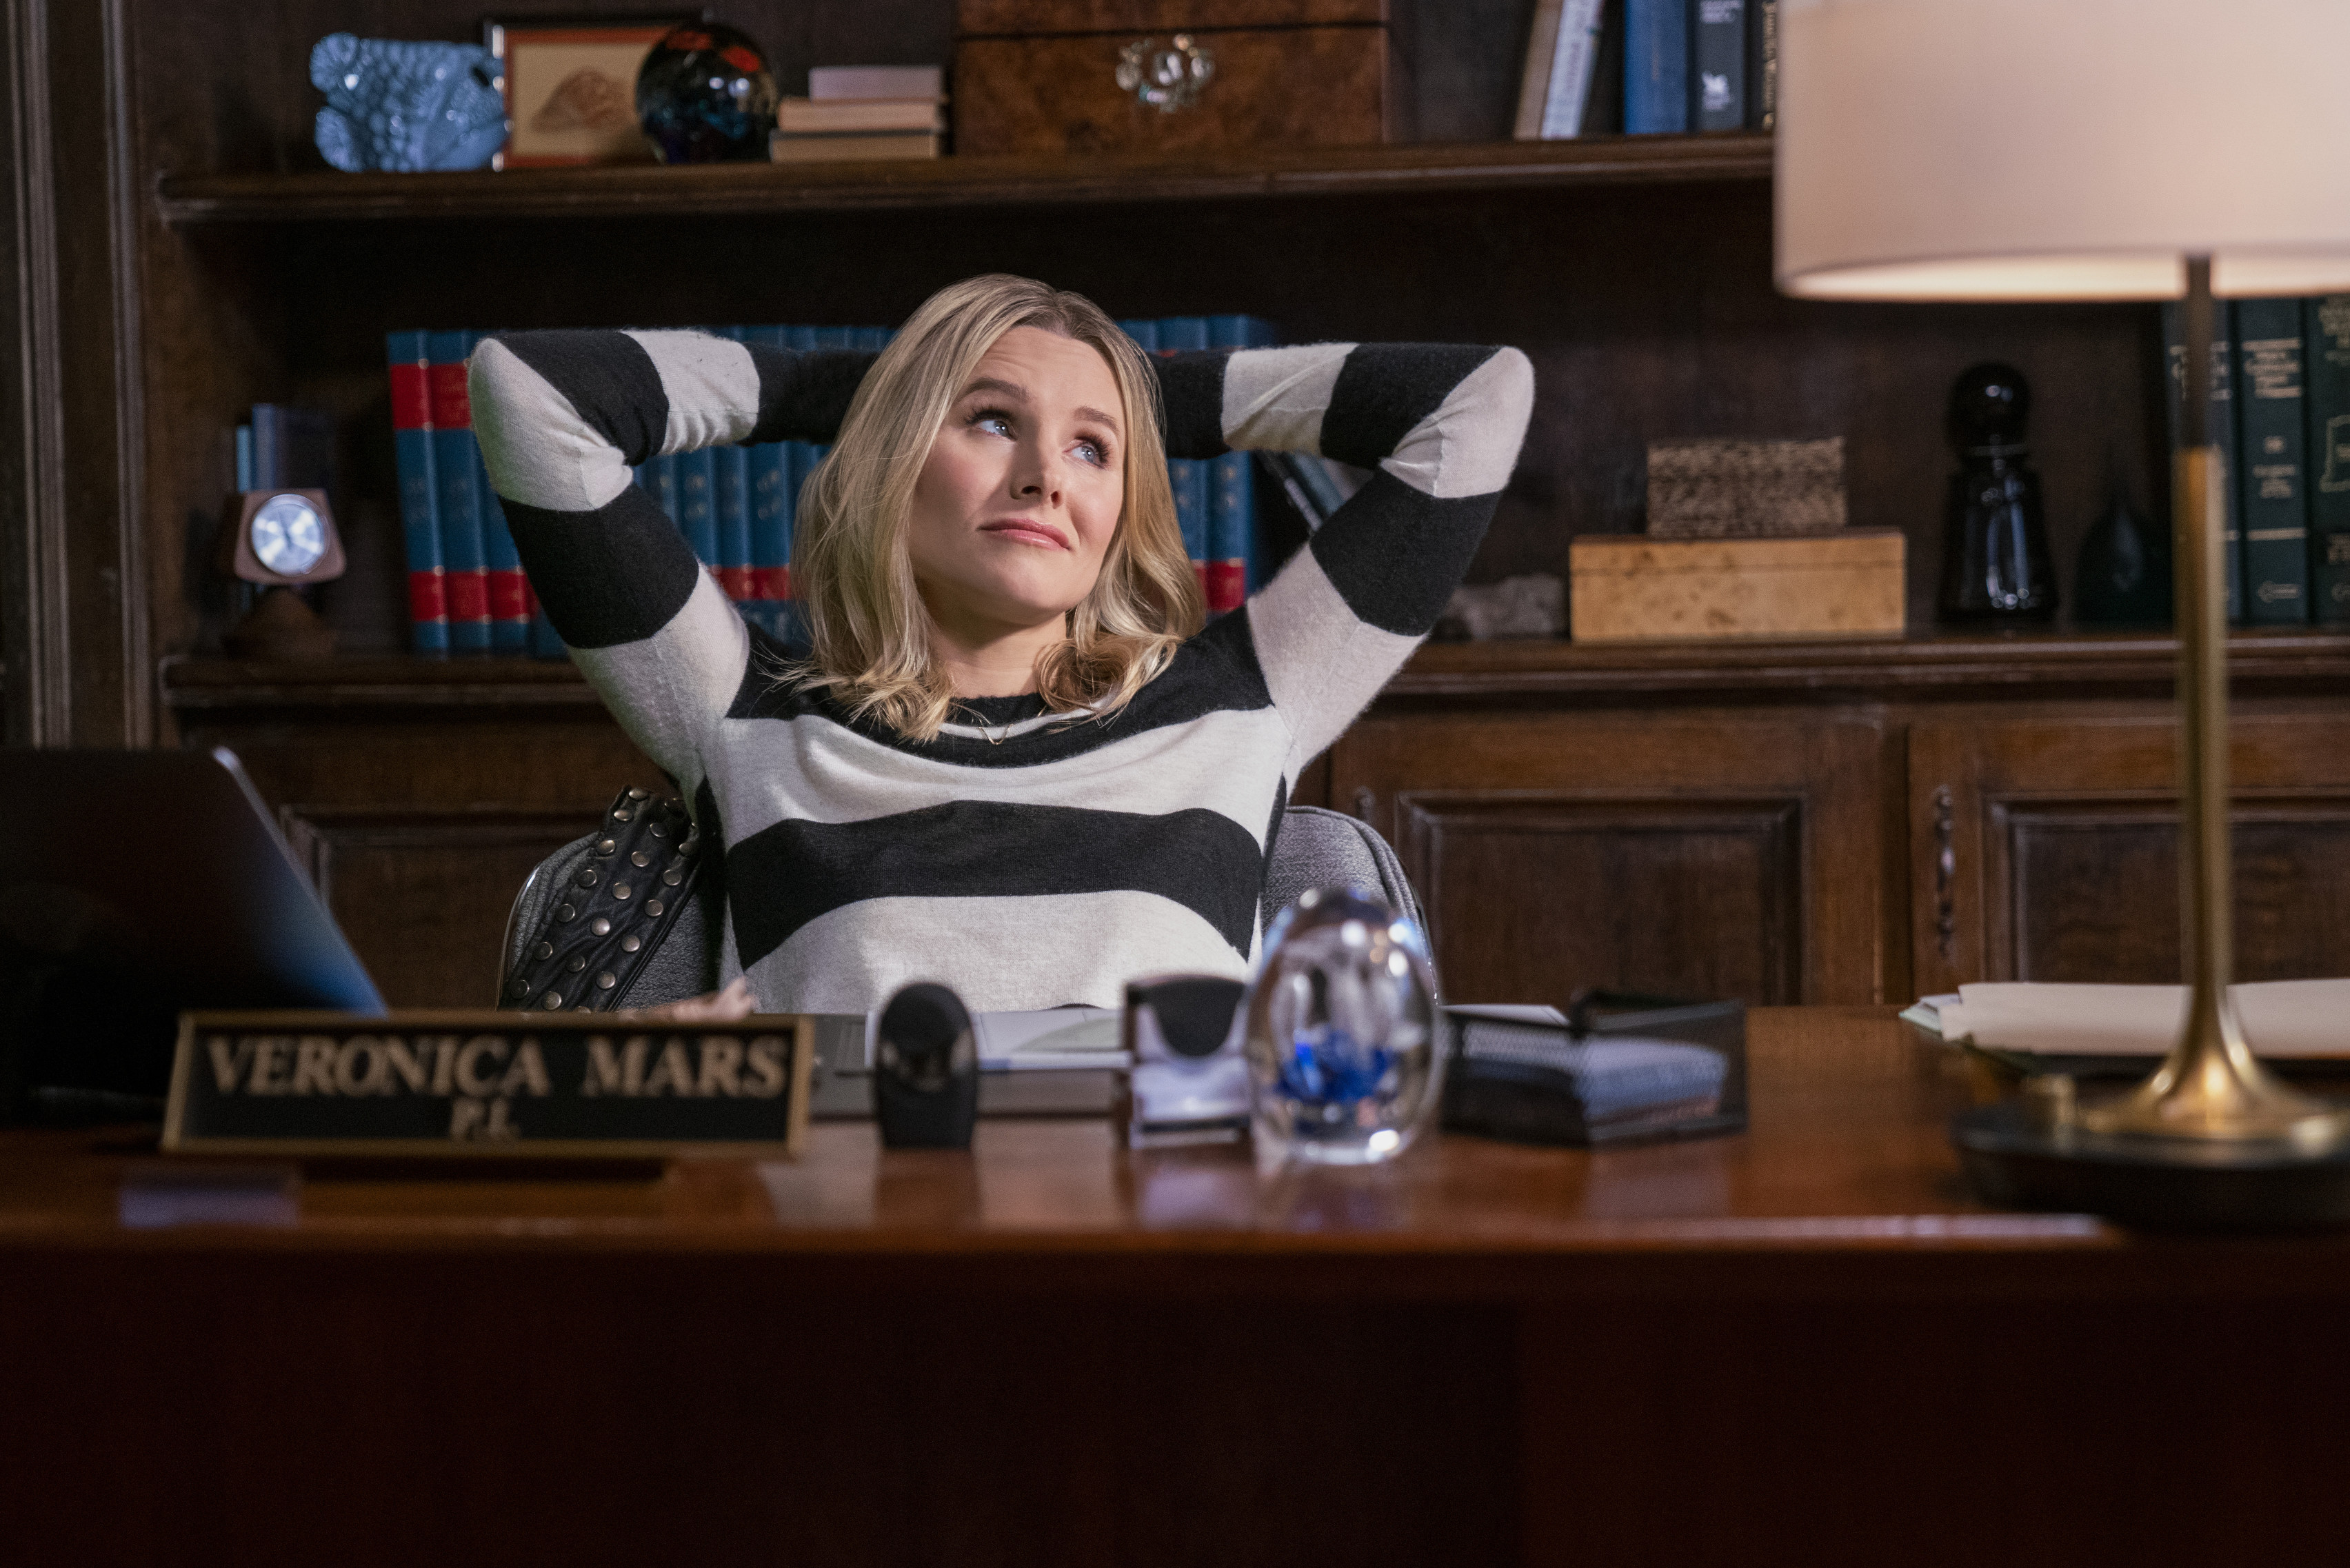 Veronica Mars: Season Four is Binge-Worthy - Solzy at the Movies